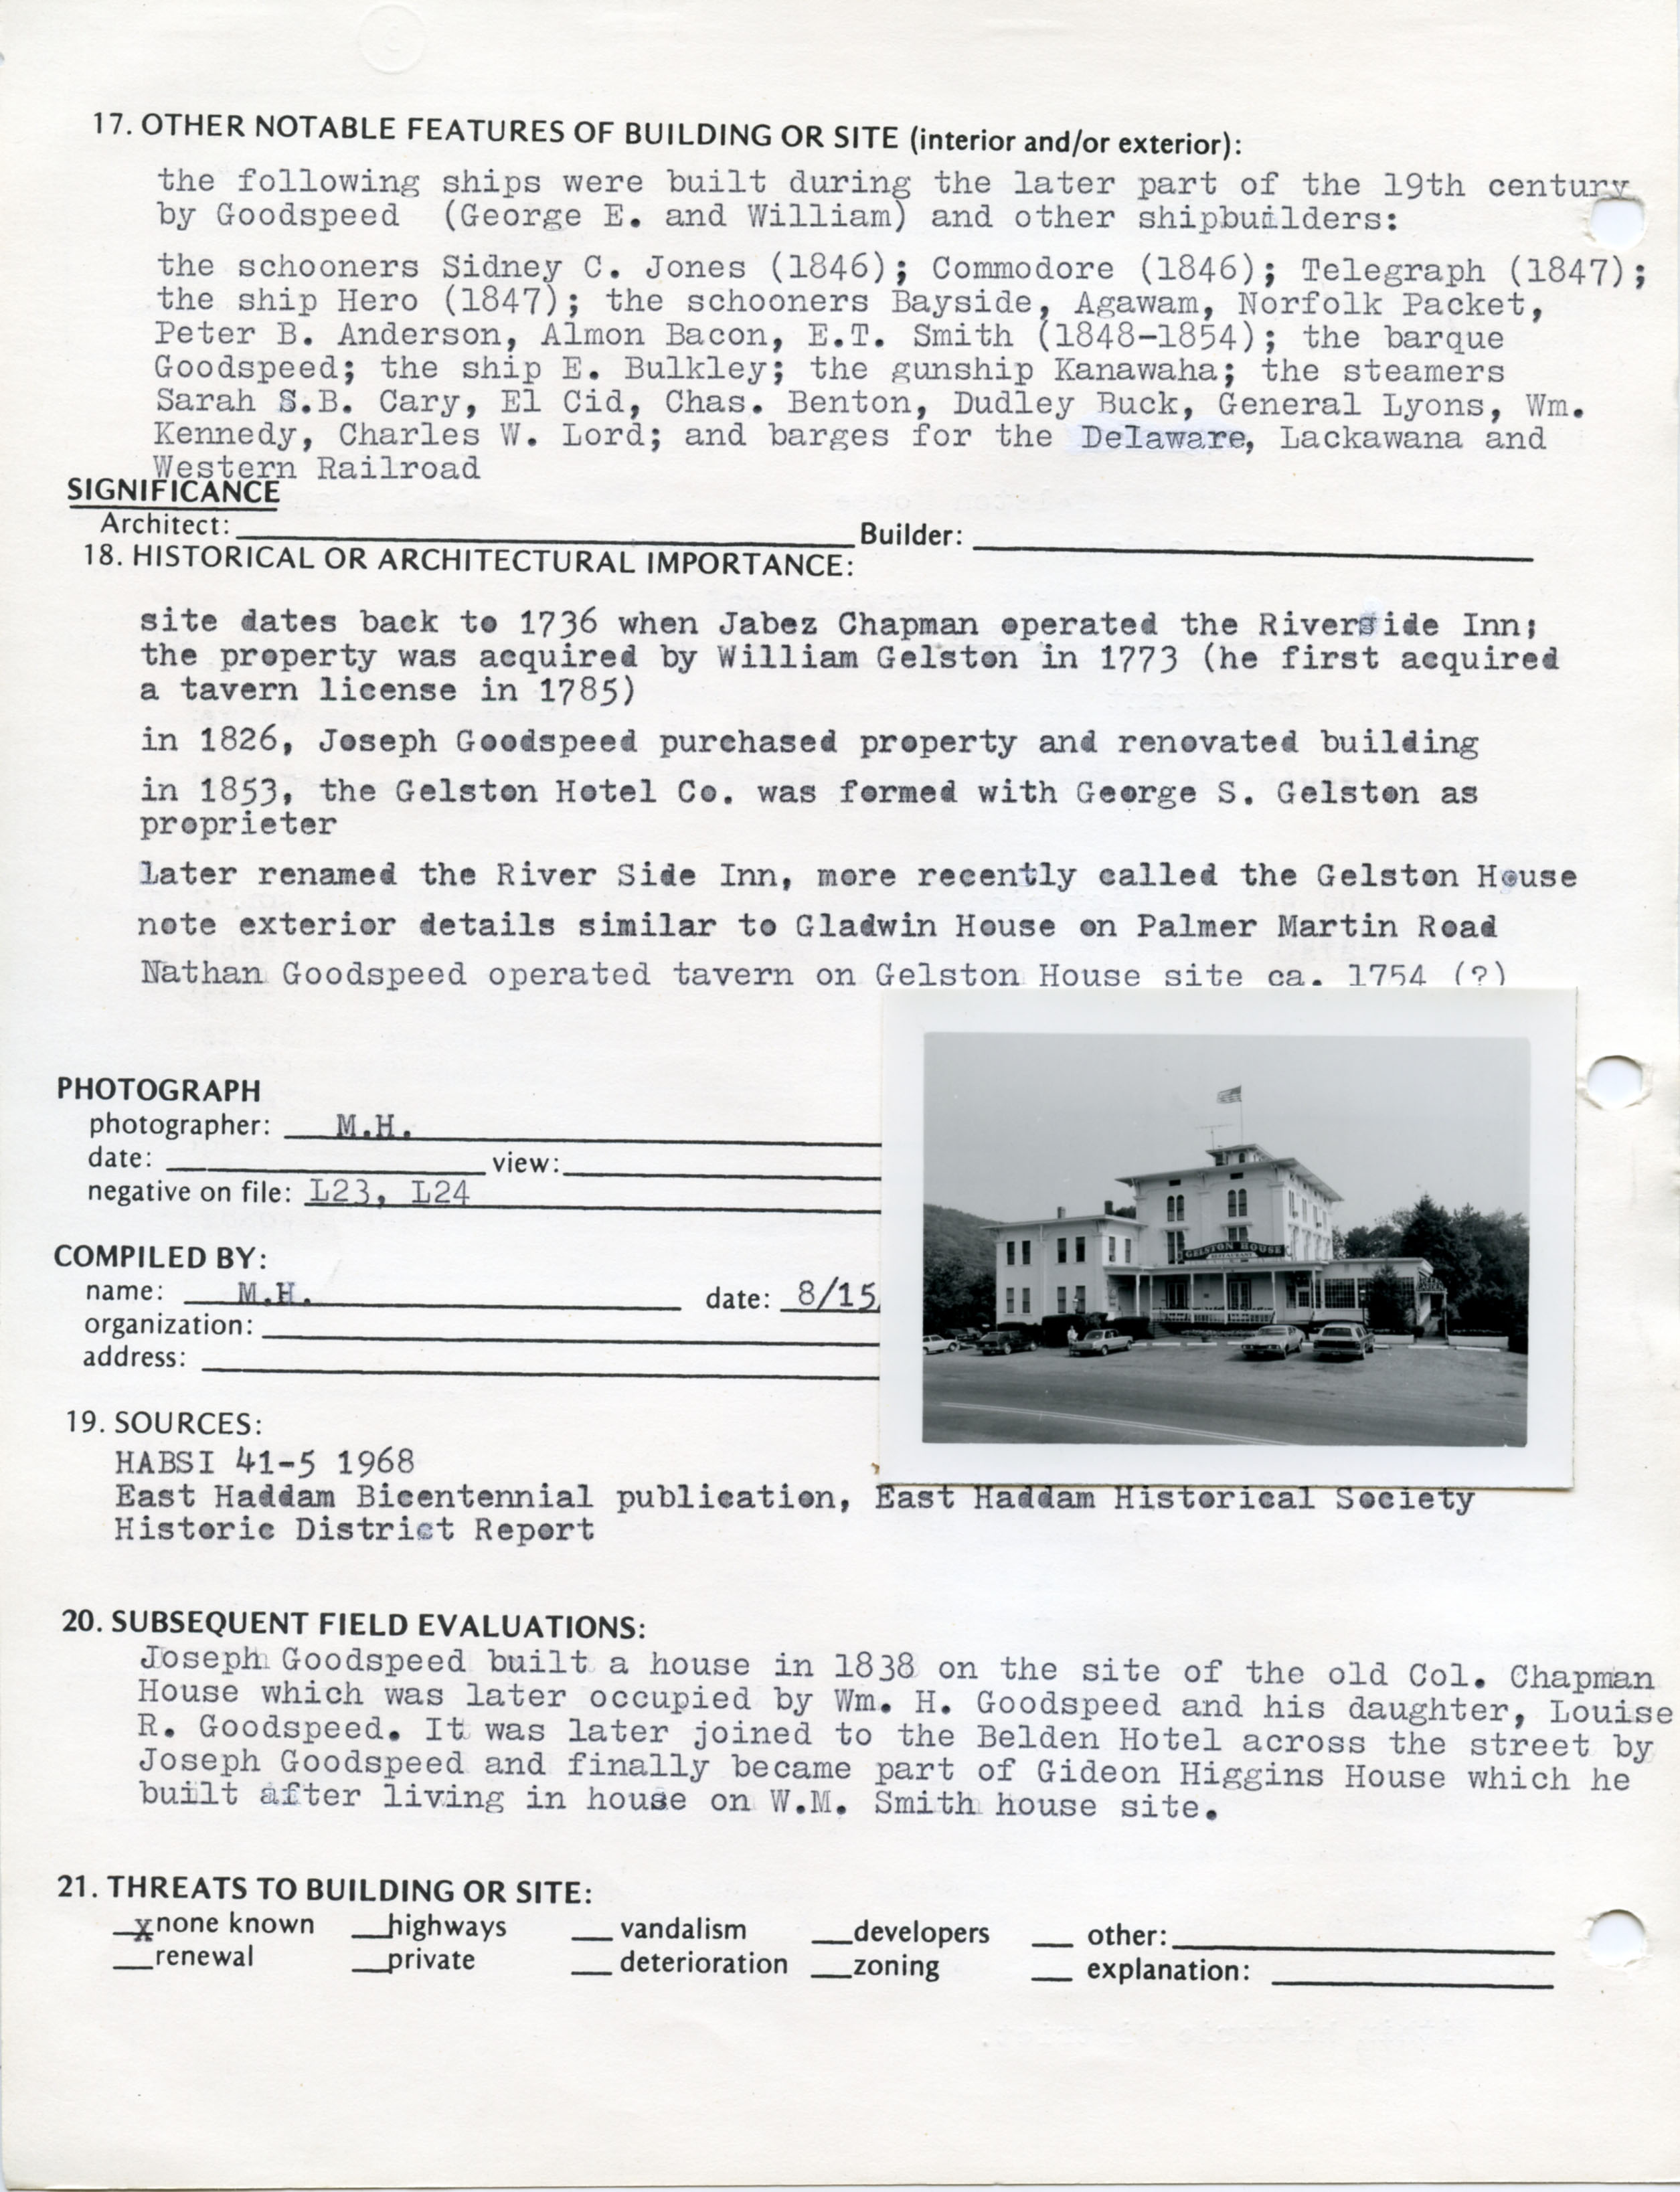 Architectural survey of Gelston House in East Hampton, Connecticut, 1977